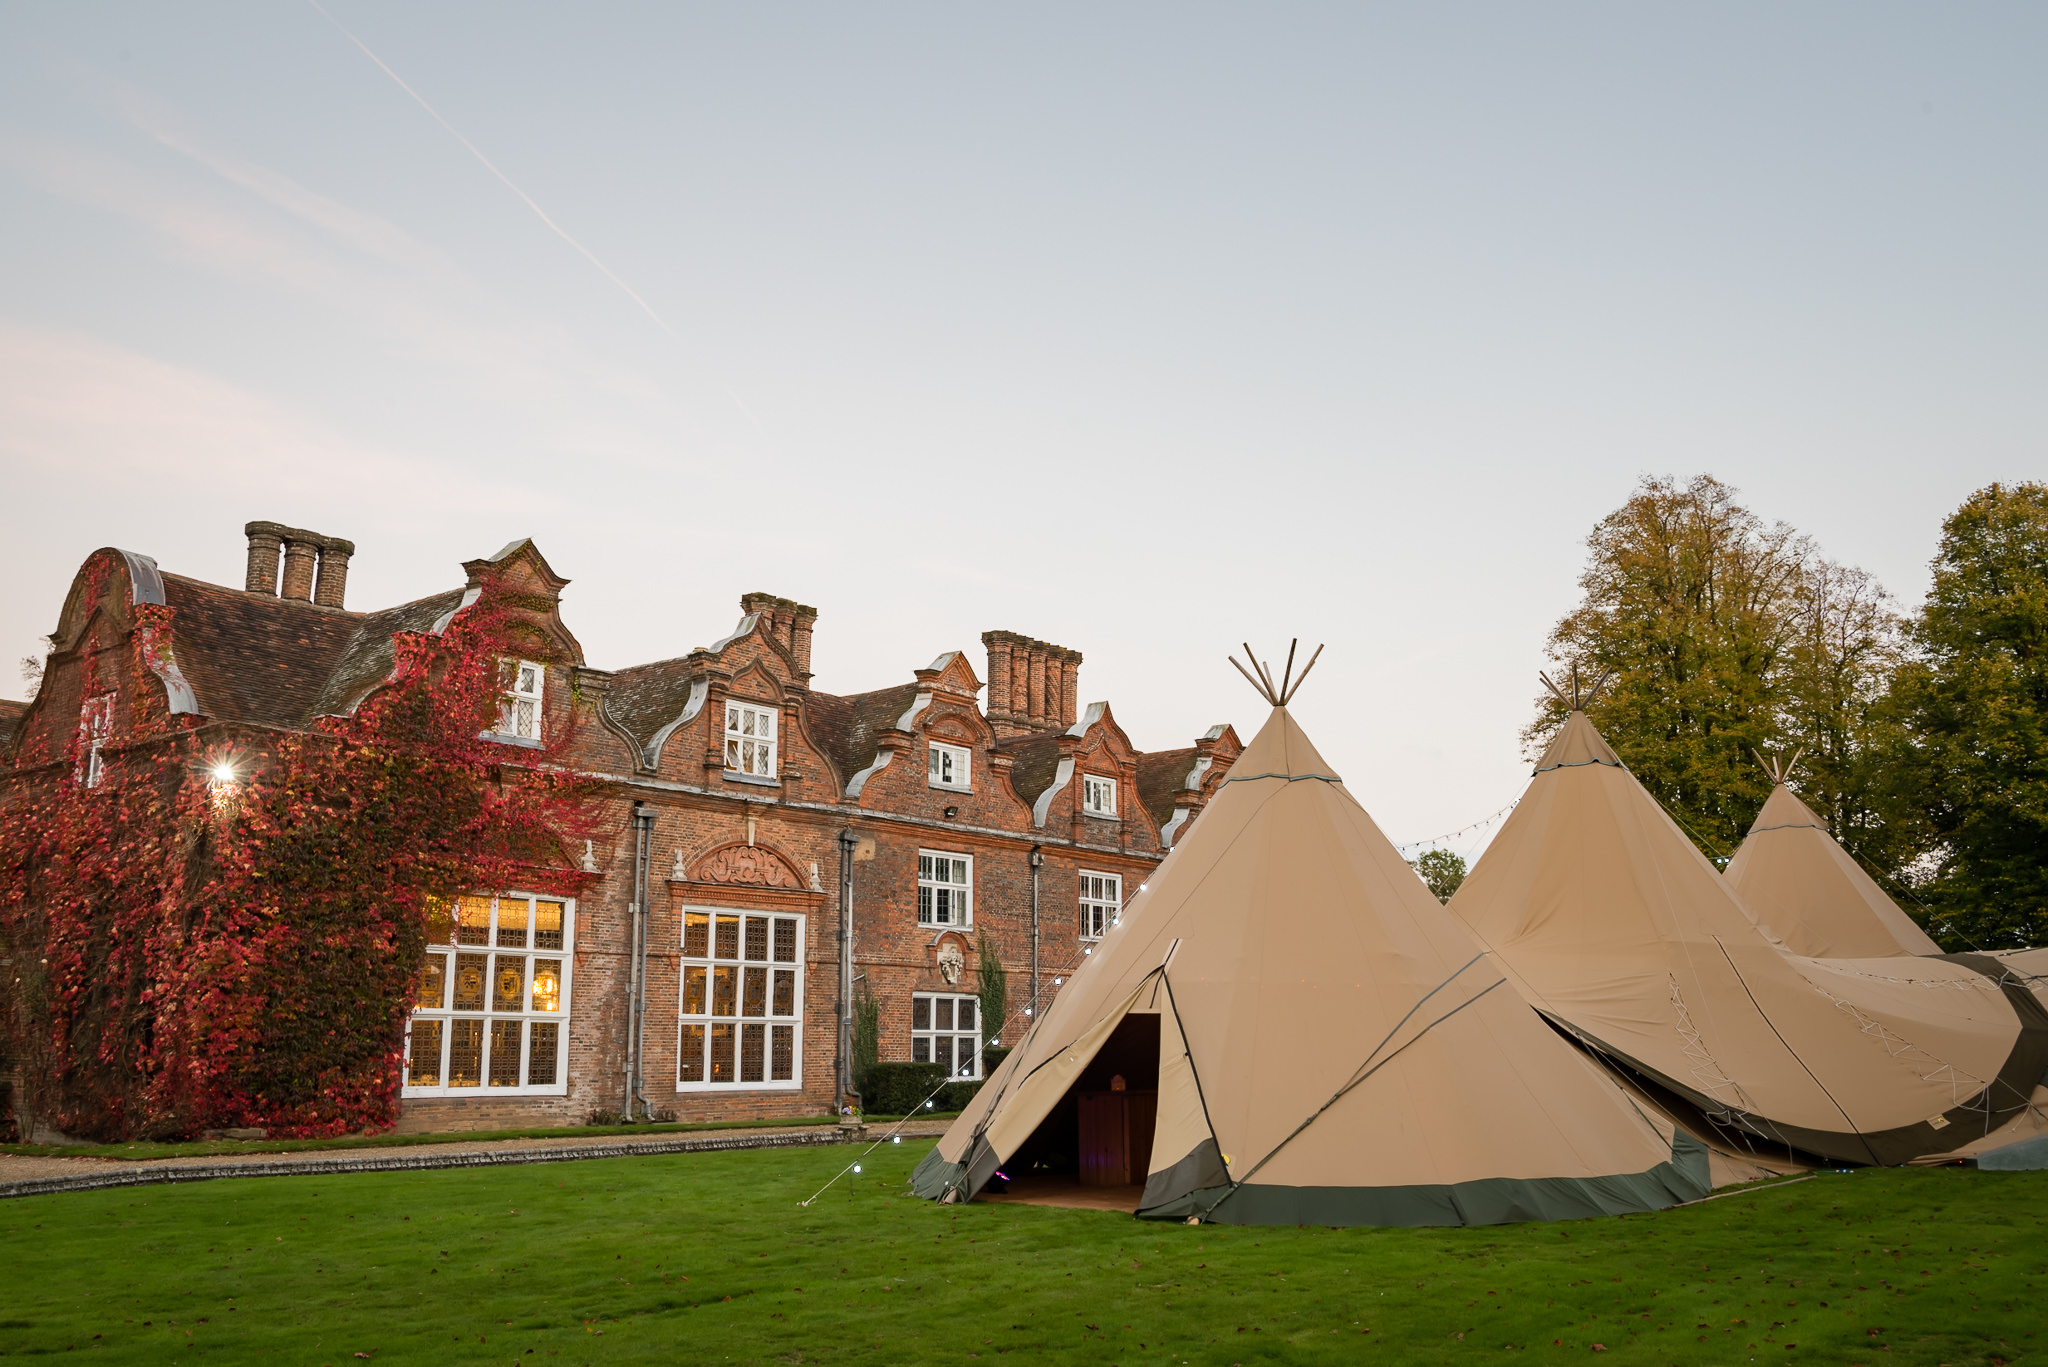 Wedding Tipi at Rothamsted Manor